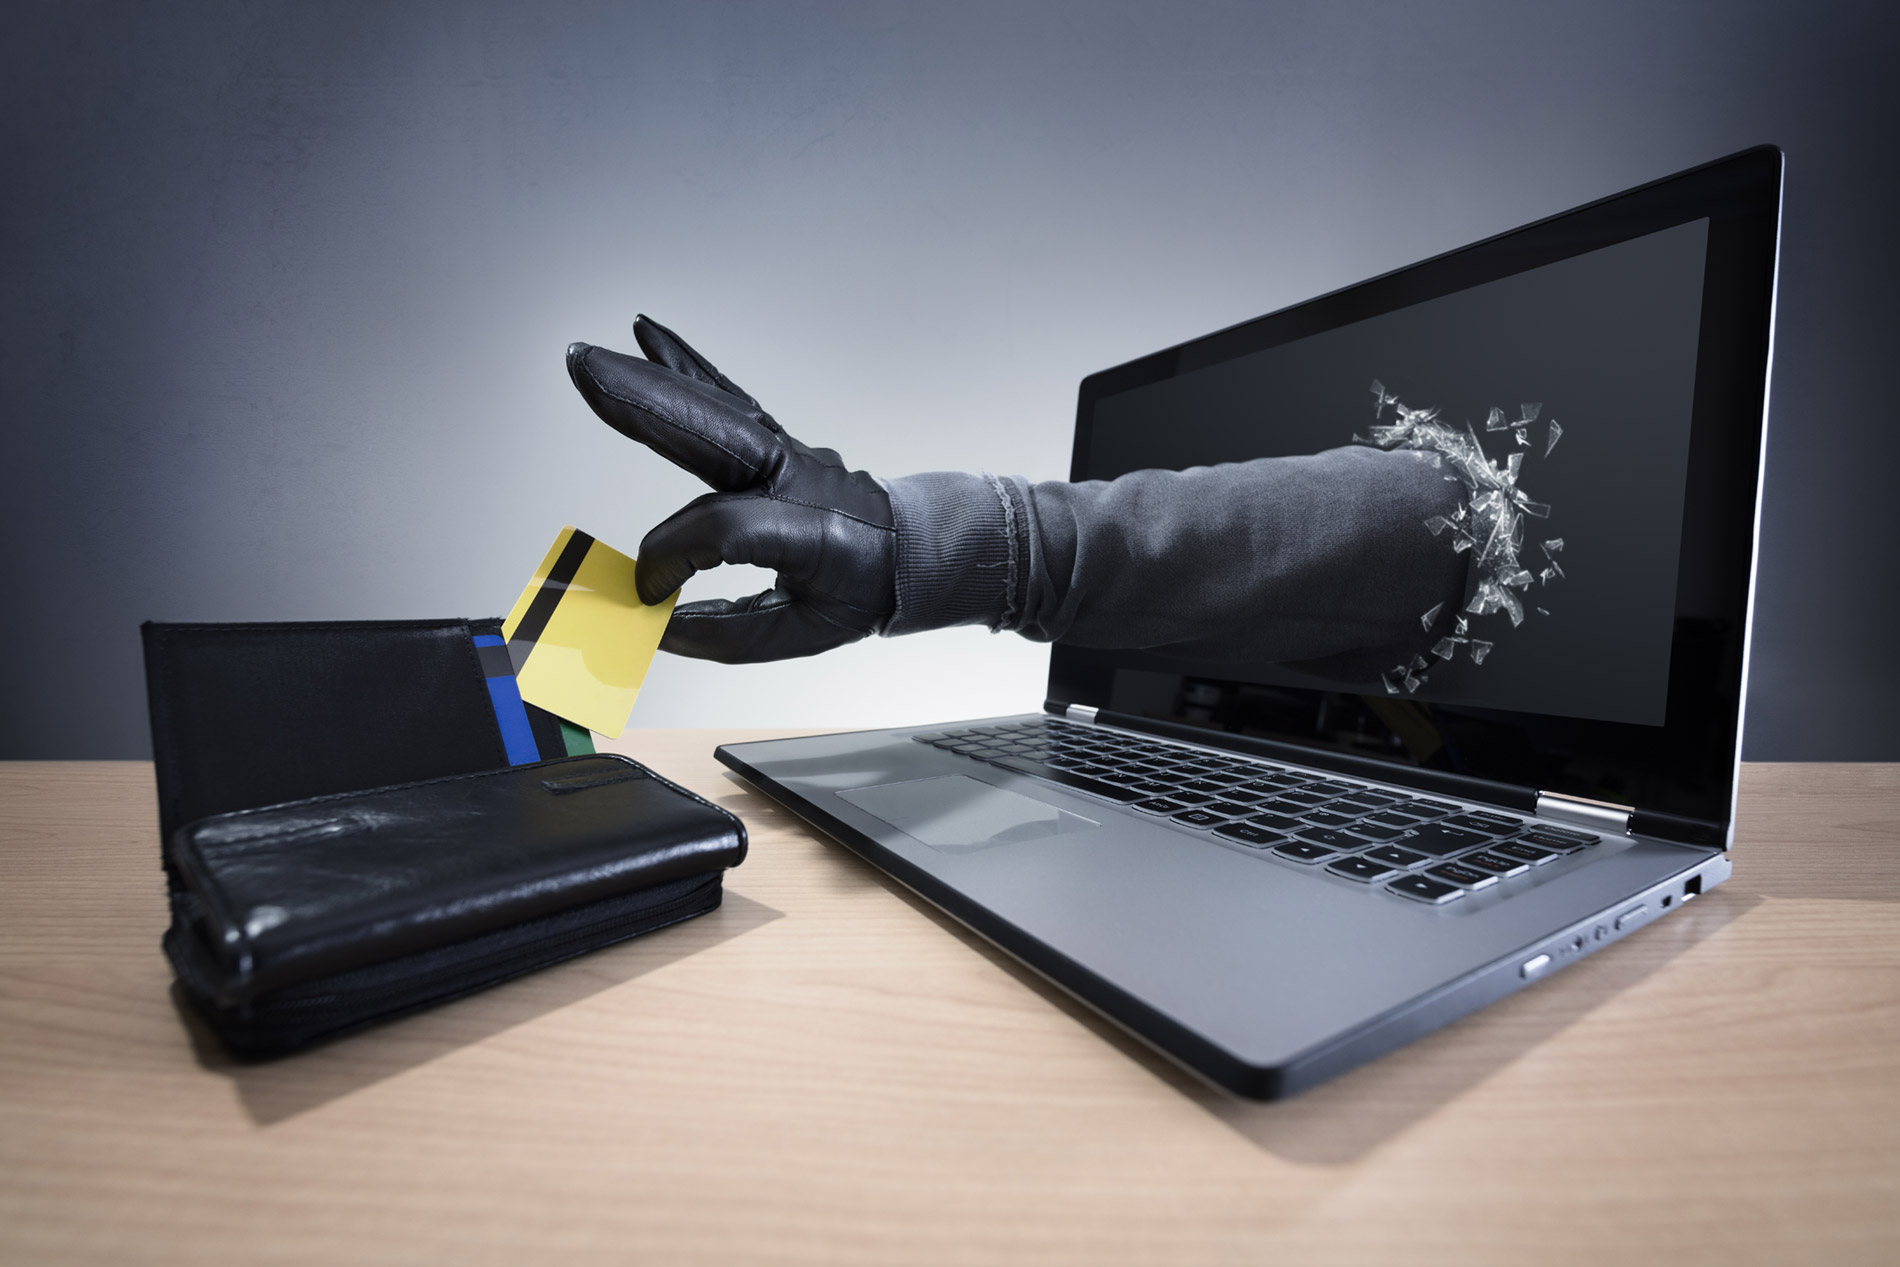 Avoid Identity Fraud Online by Tracking Purchases